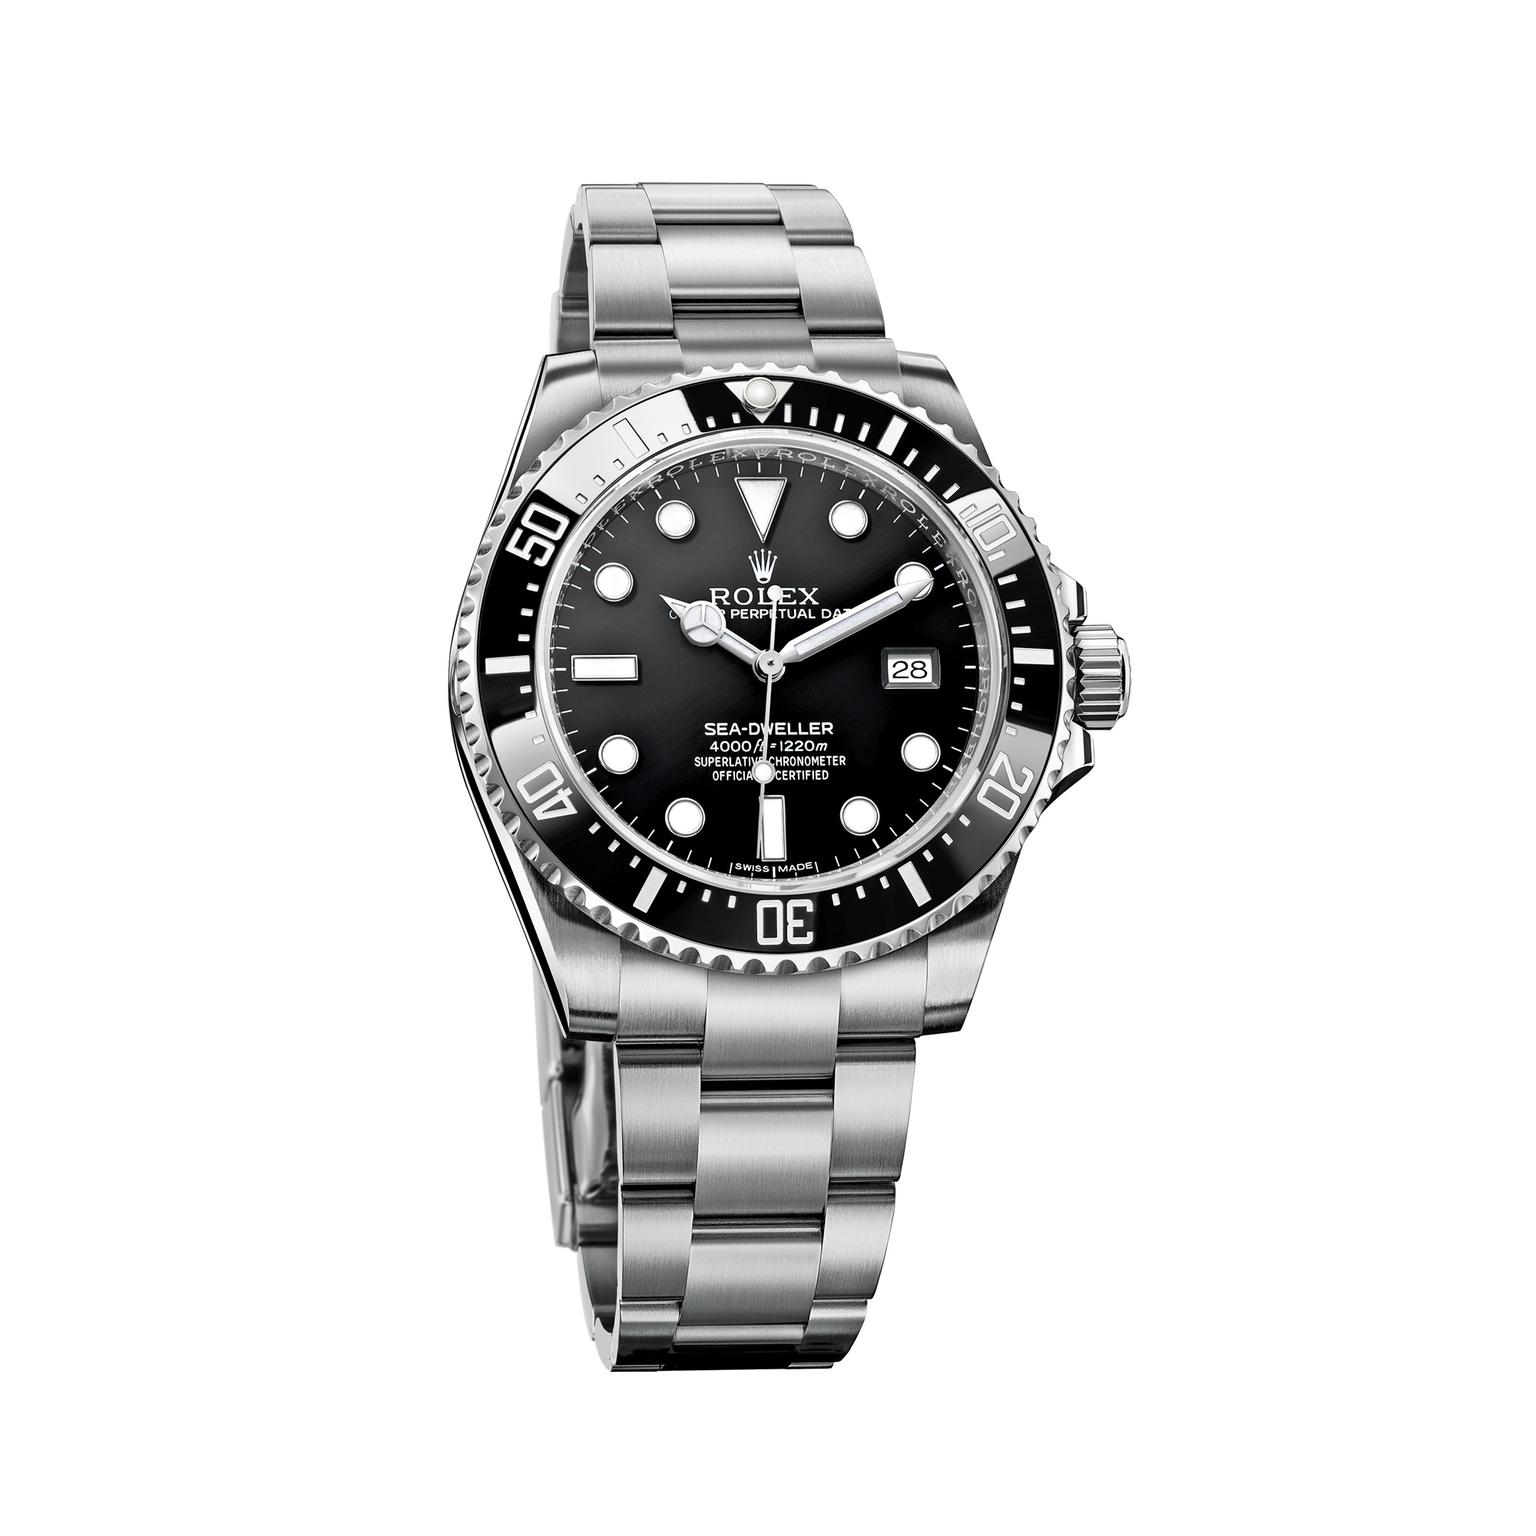 Rolex Sea Dweller 4000 watch